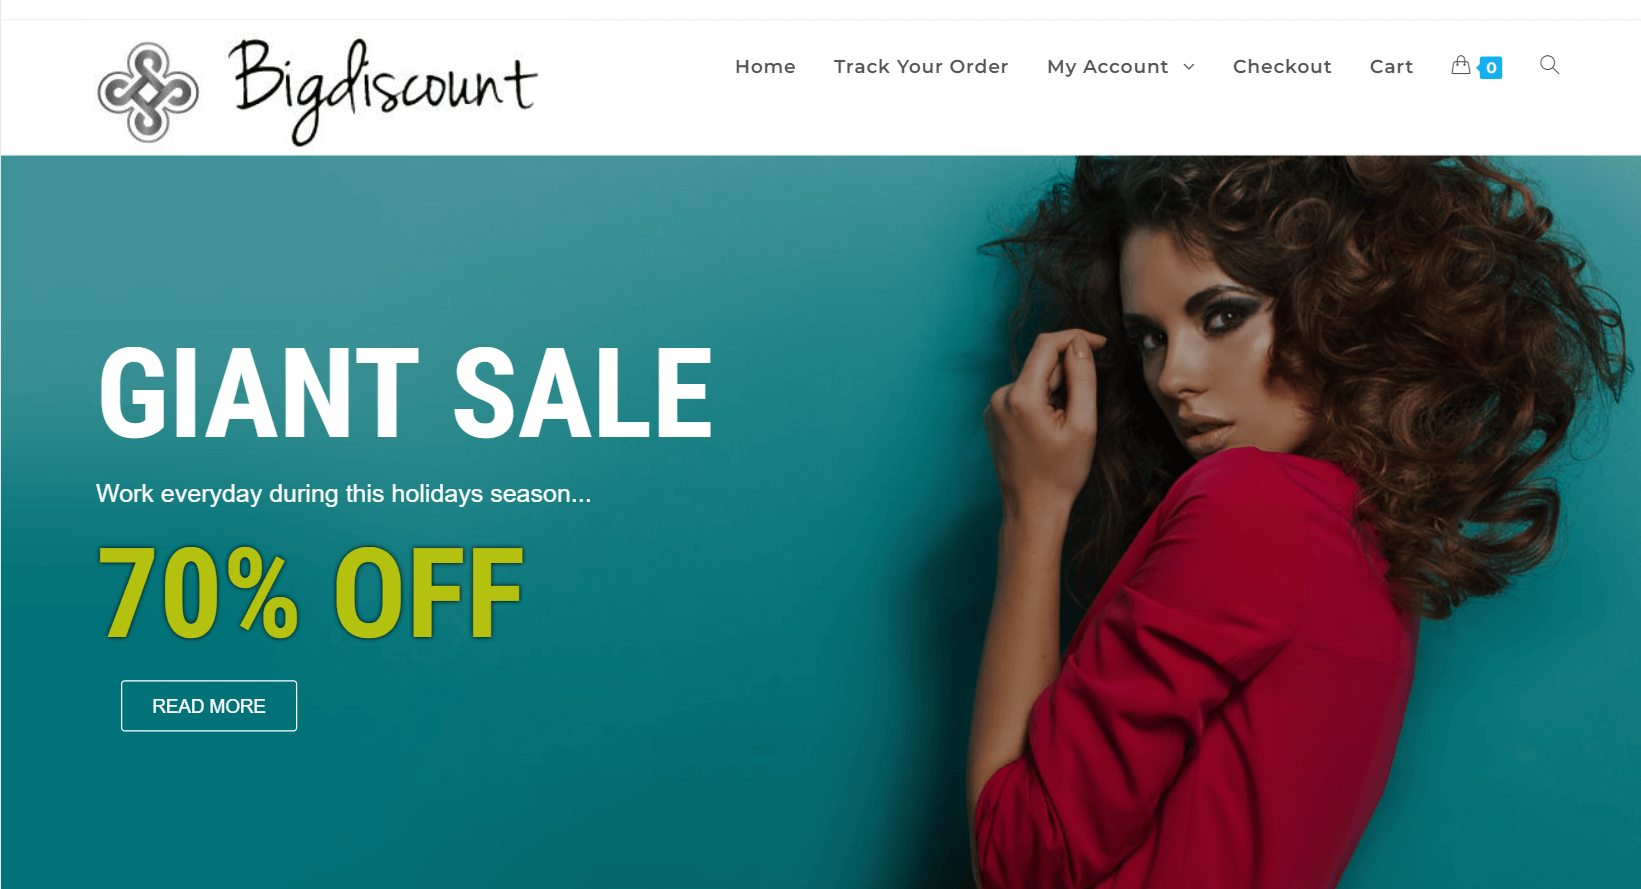 bigdiscount website screenshot